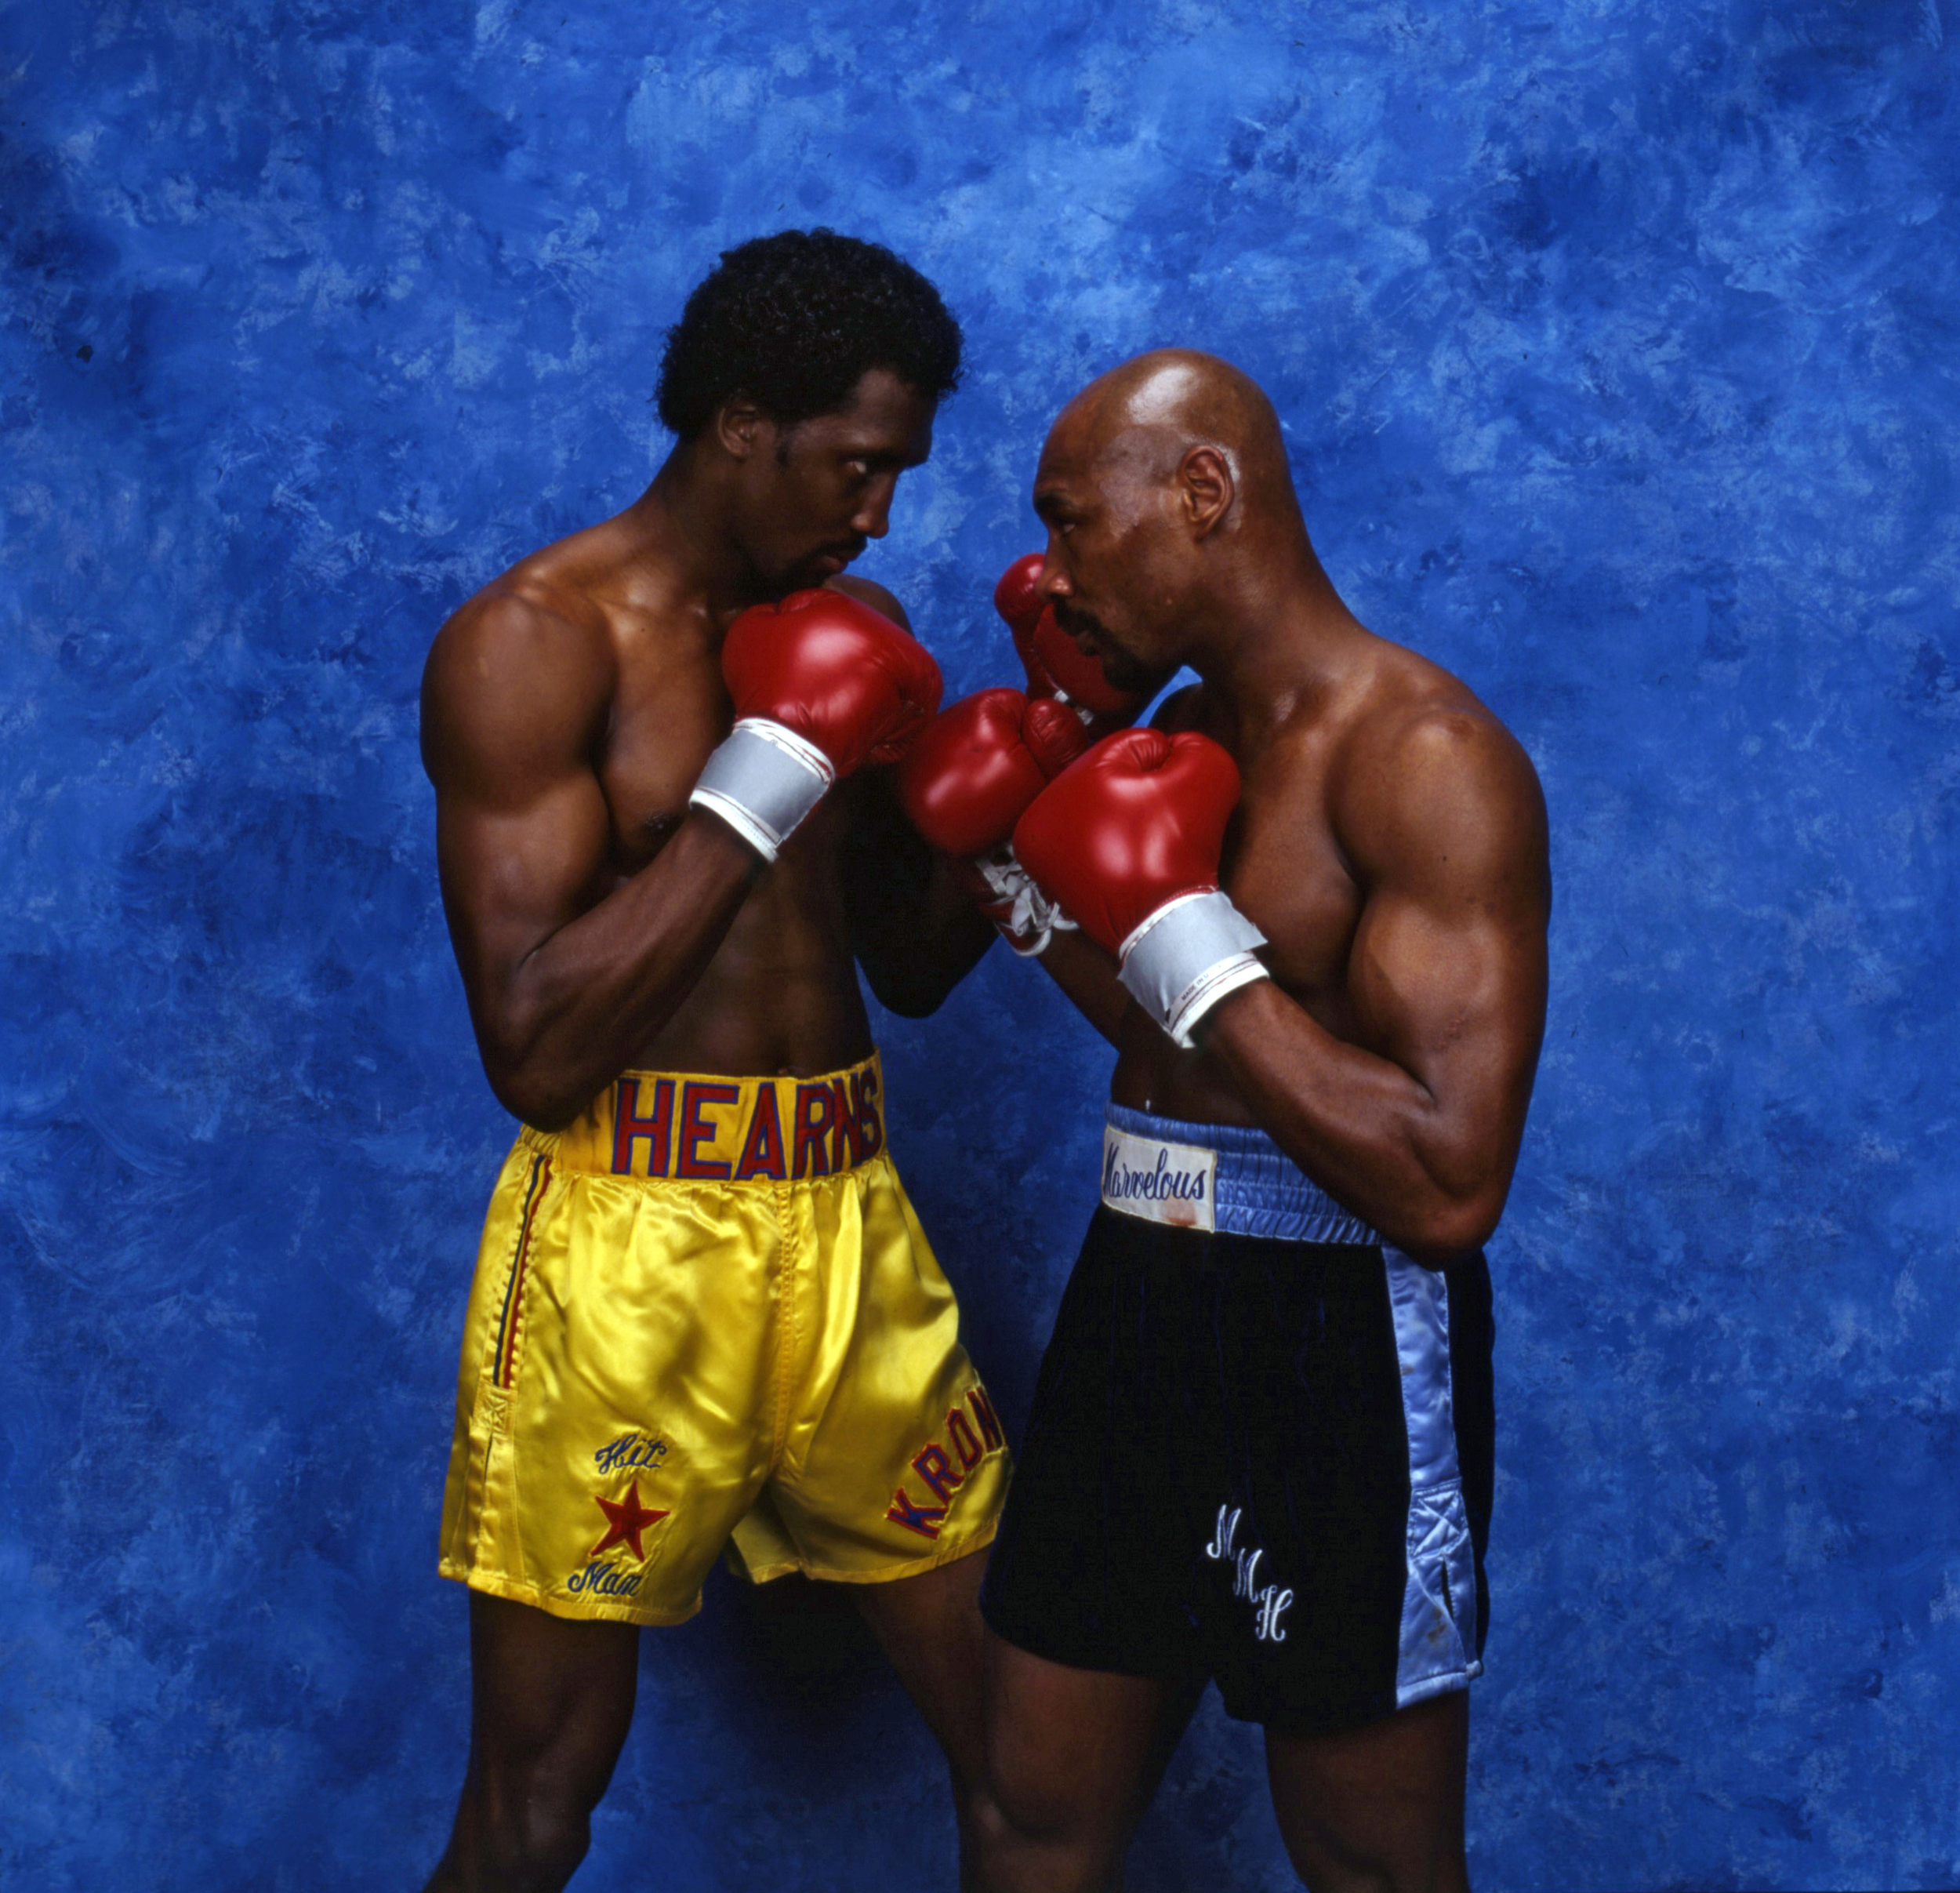 Hagler_v_Hearns_11.jpg